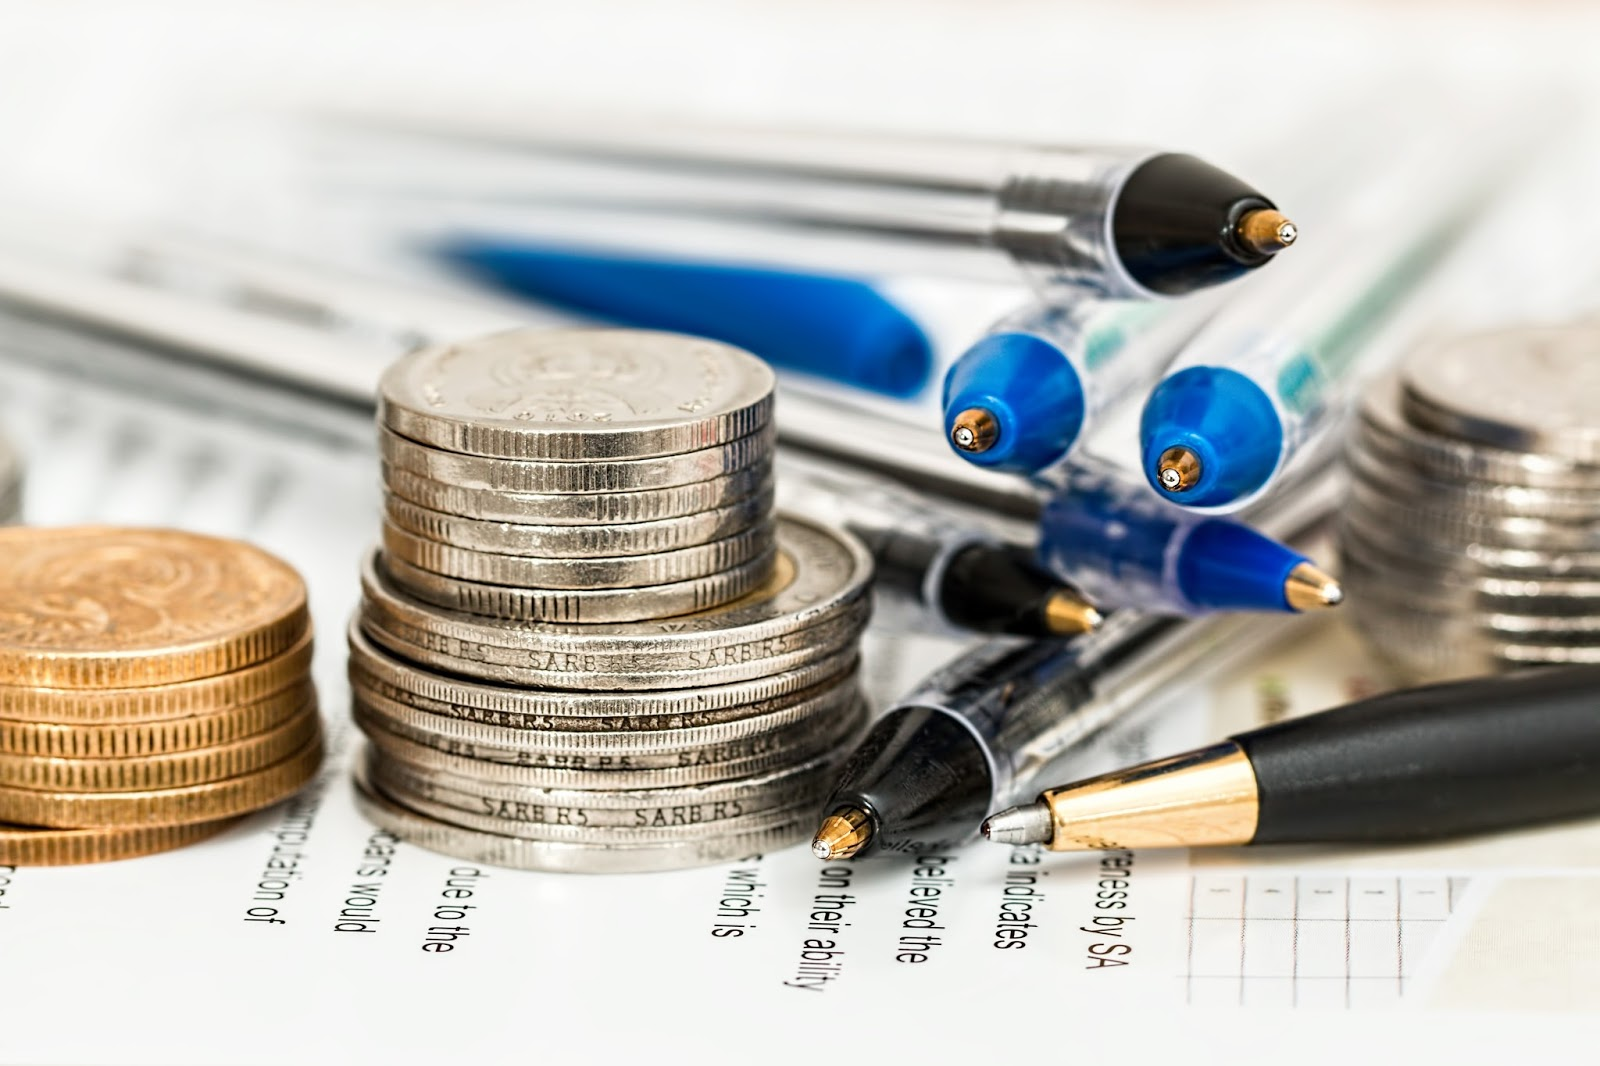 Financial Planning - pile of pens and coins